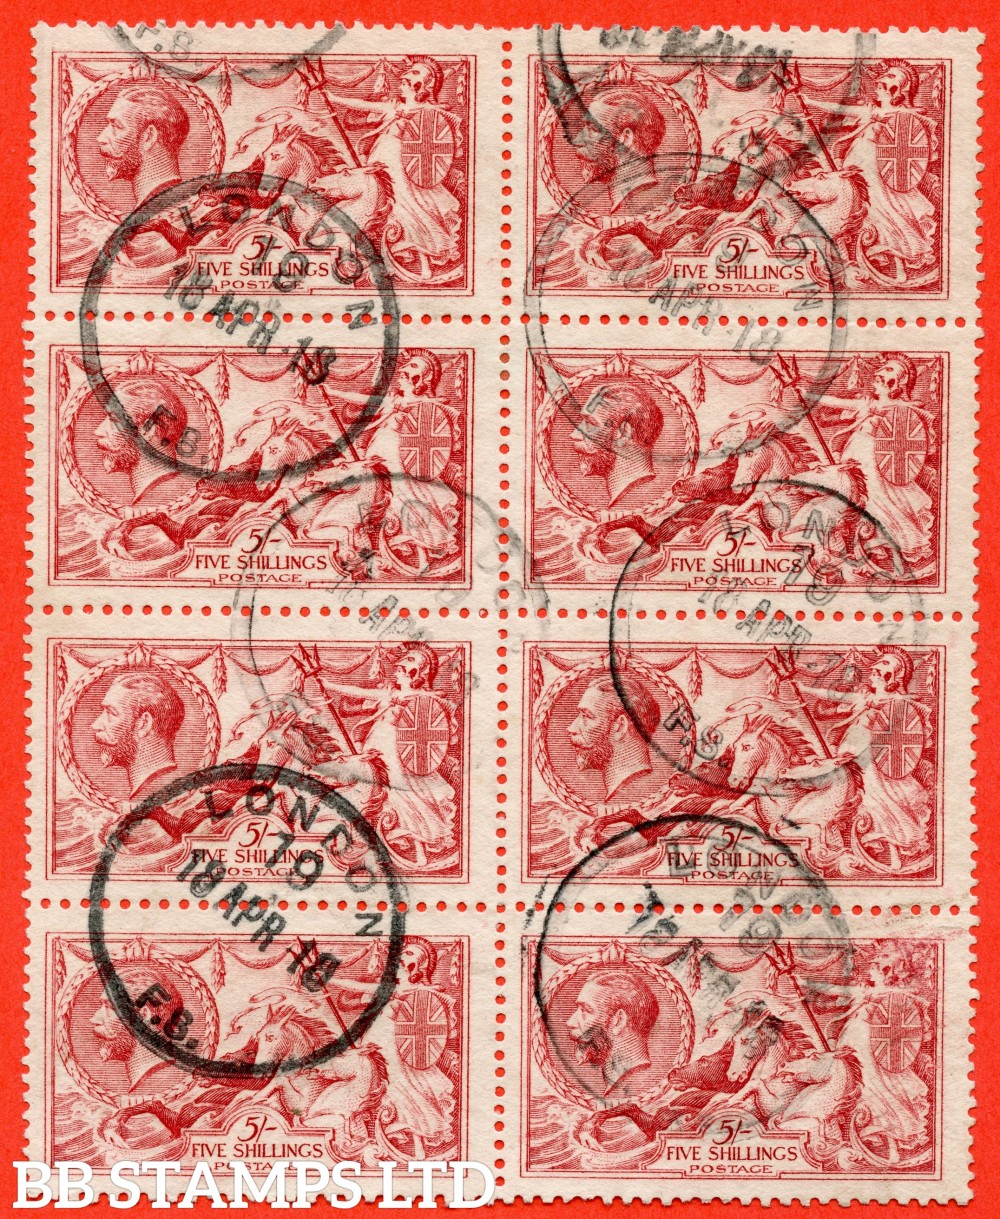 """SG. 410. N67 (3). 5/- pale carmine (worn plate). A fine """" 18th April 1918 LONDON """" CDS used vertical block of 8. A very scarce multiple."""